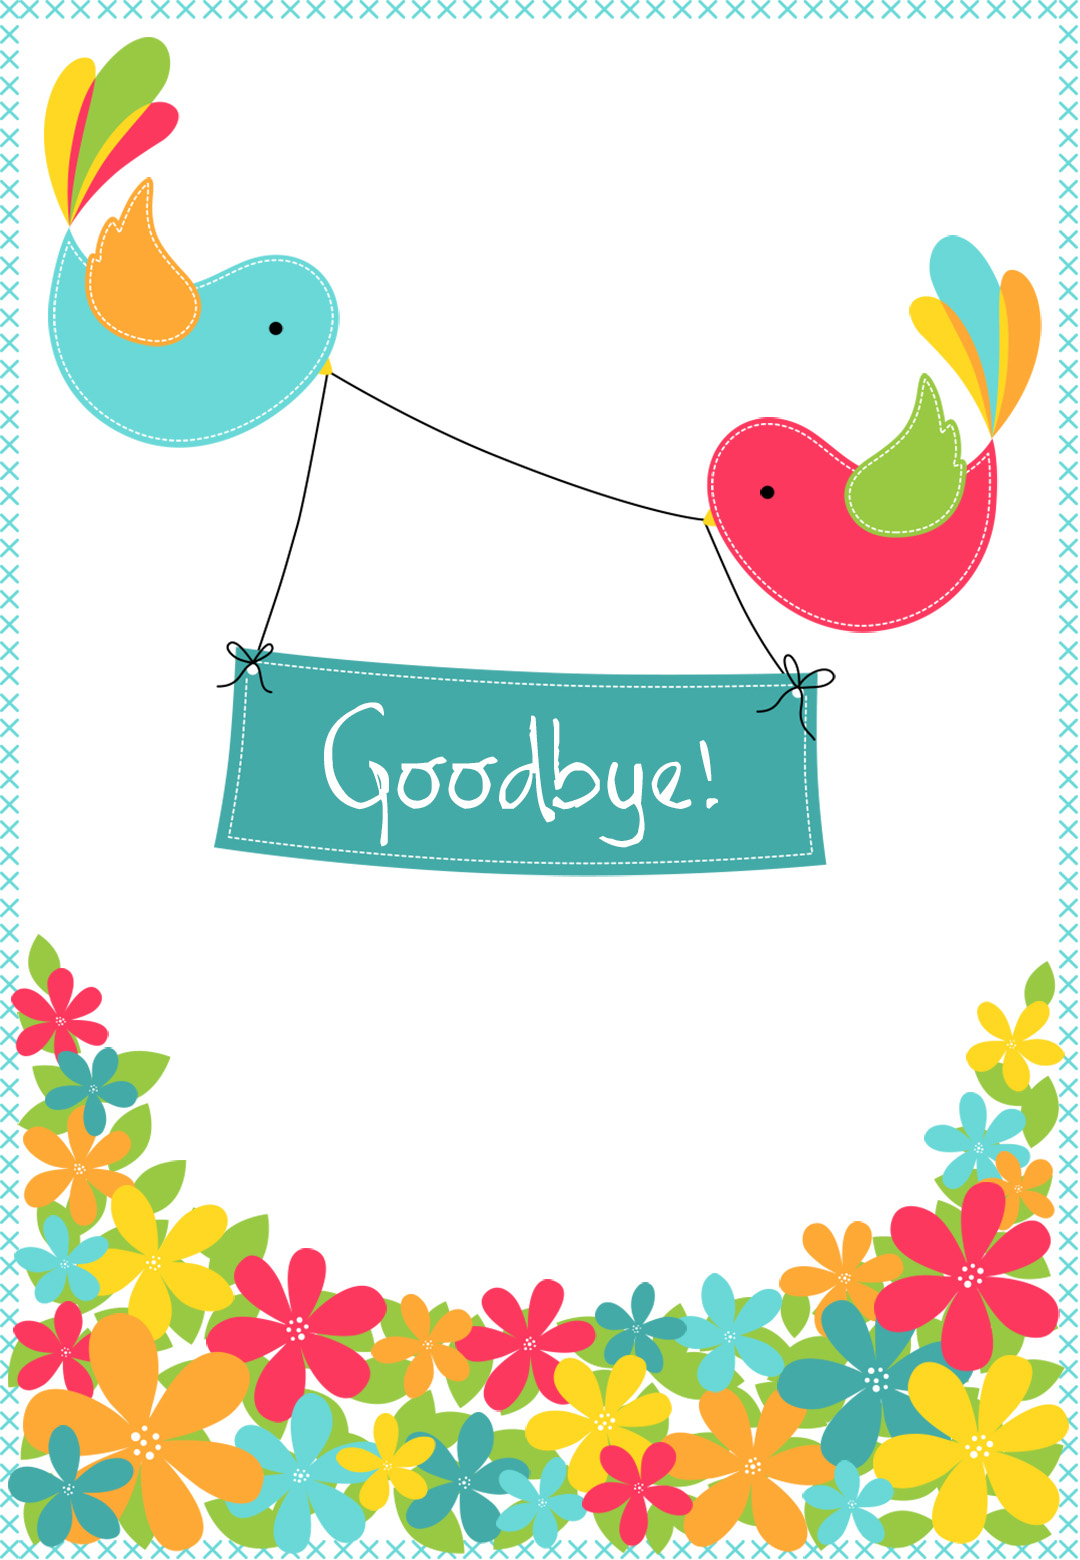 Goodbye From Your Colleagues - Free Good Luck Card | Greetings Island - Free Printable Goodbye Cards